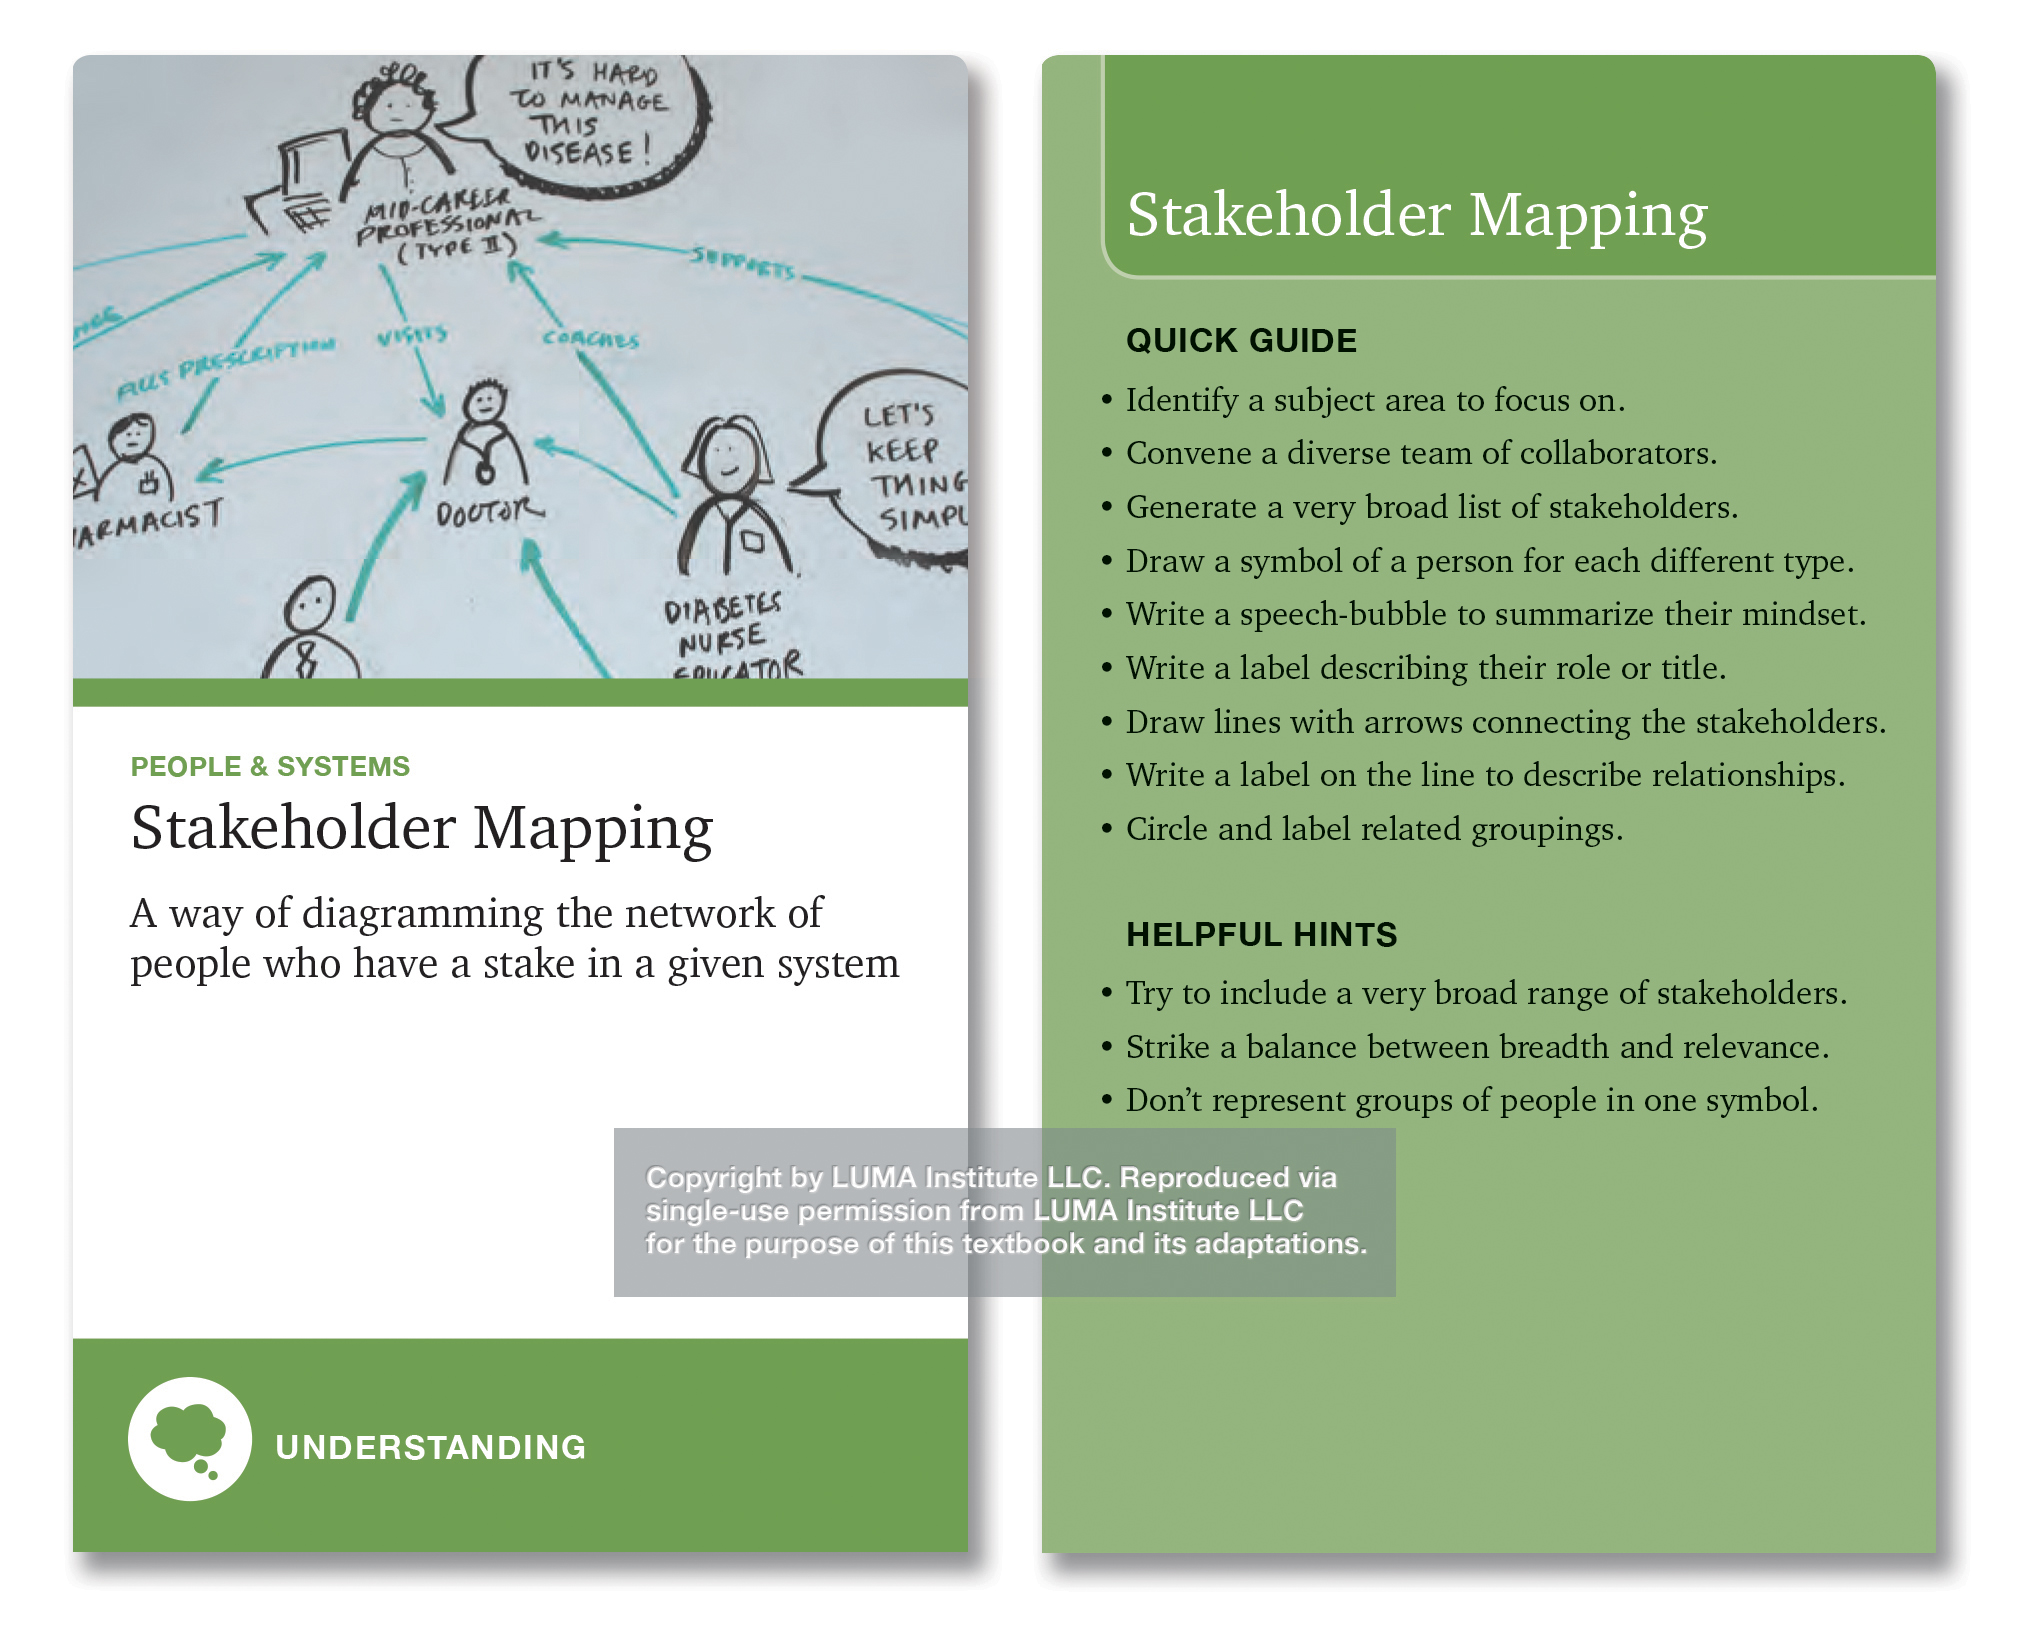 "Depicts Stakeholder Mapping, ""a way of diagramming the network of people who have a stake in a given system."" Quick guide bulleted tips include identifying a subject area, convening diverse collaborators, generating a broad list of stakeholders, summarizing their mindsets, describing their roles, connecting them with lines describing their relationships and circling and labeling related groupings."